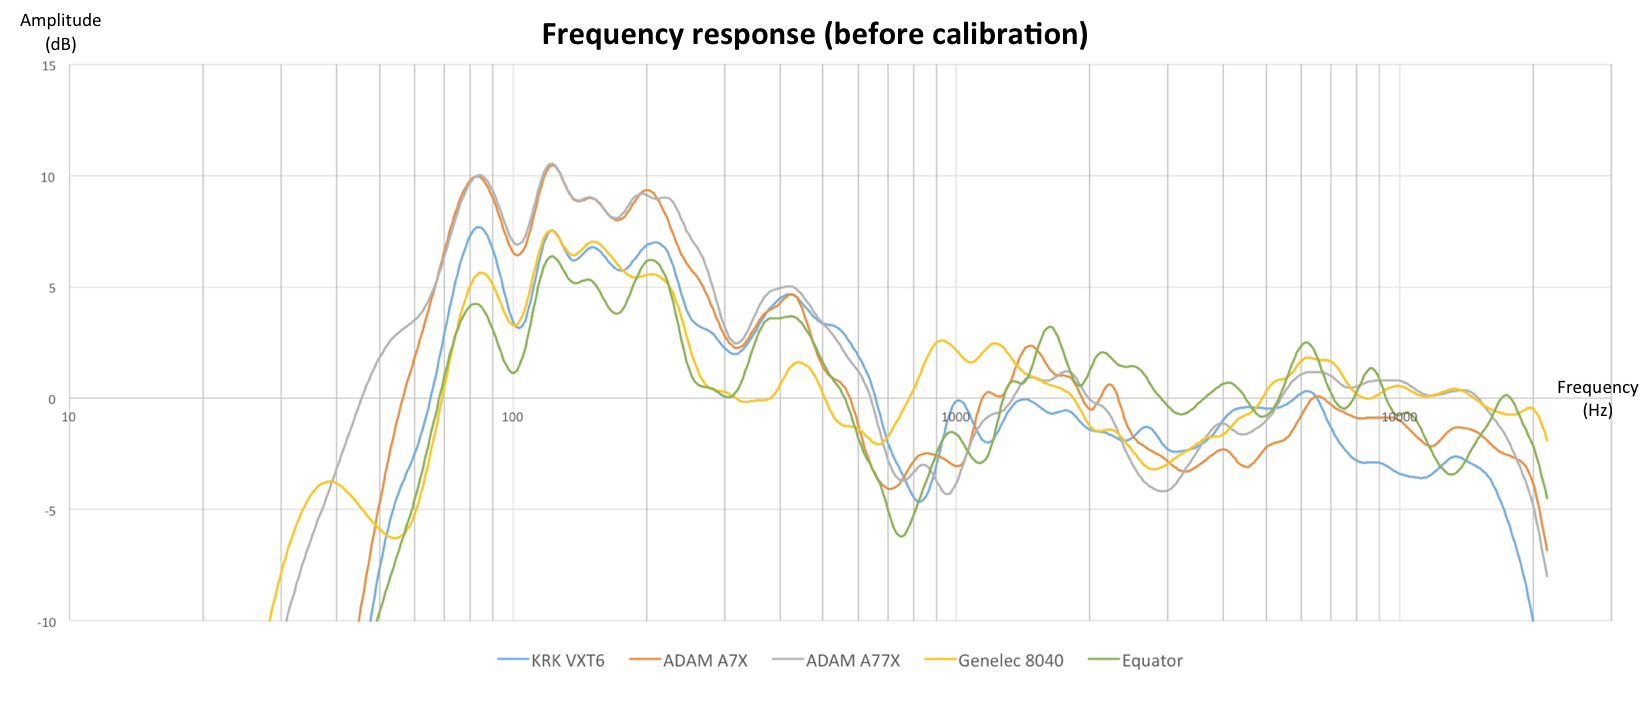 SW_C1_Frequency_response_before